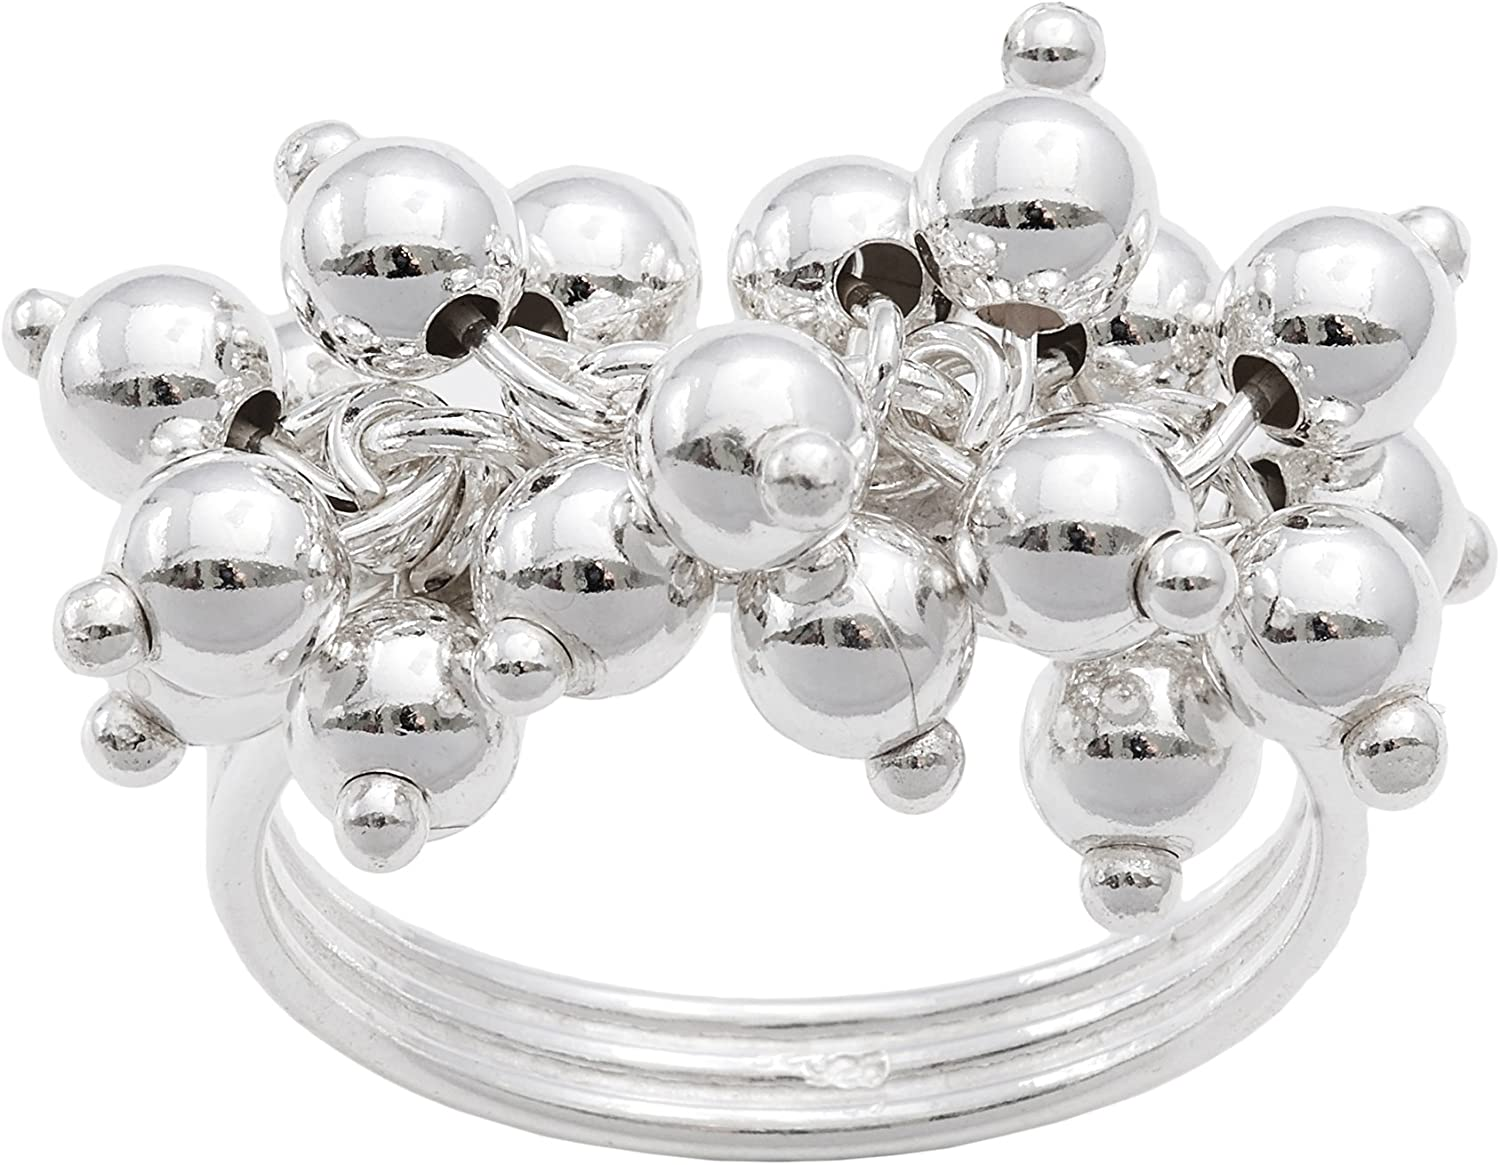 Silverly .925 Sterling Silver Moving Bead Bell Ball Charm Linked Layered Ring